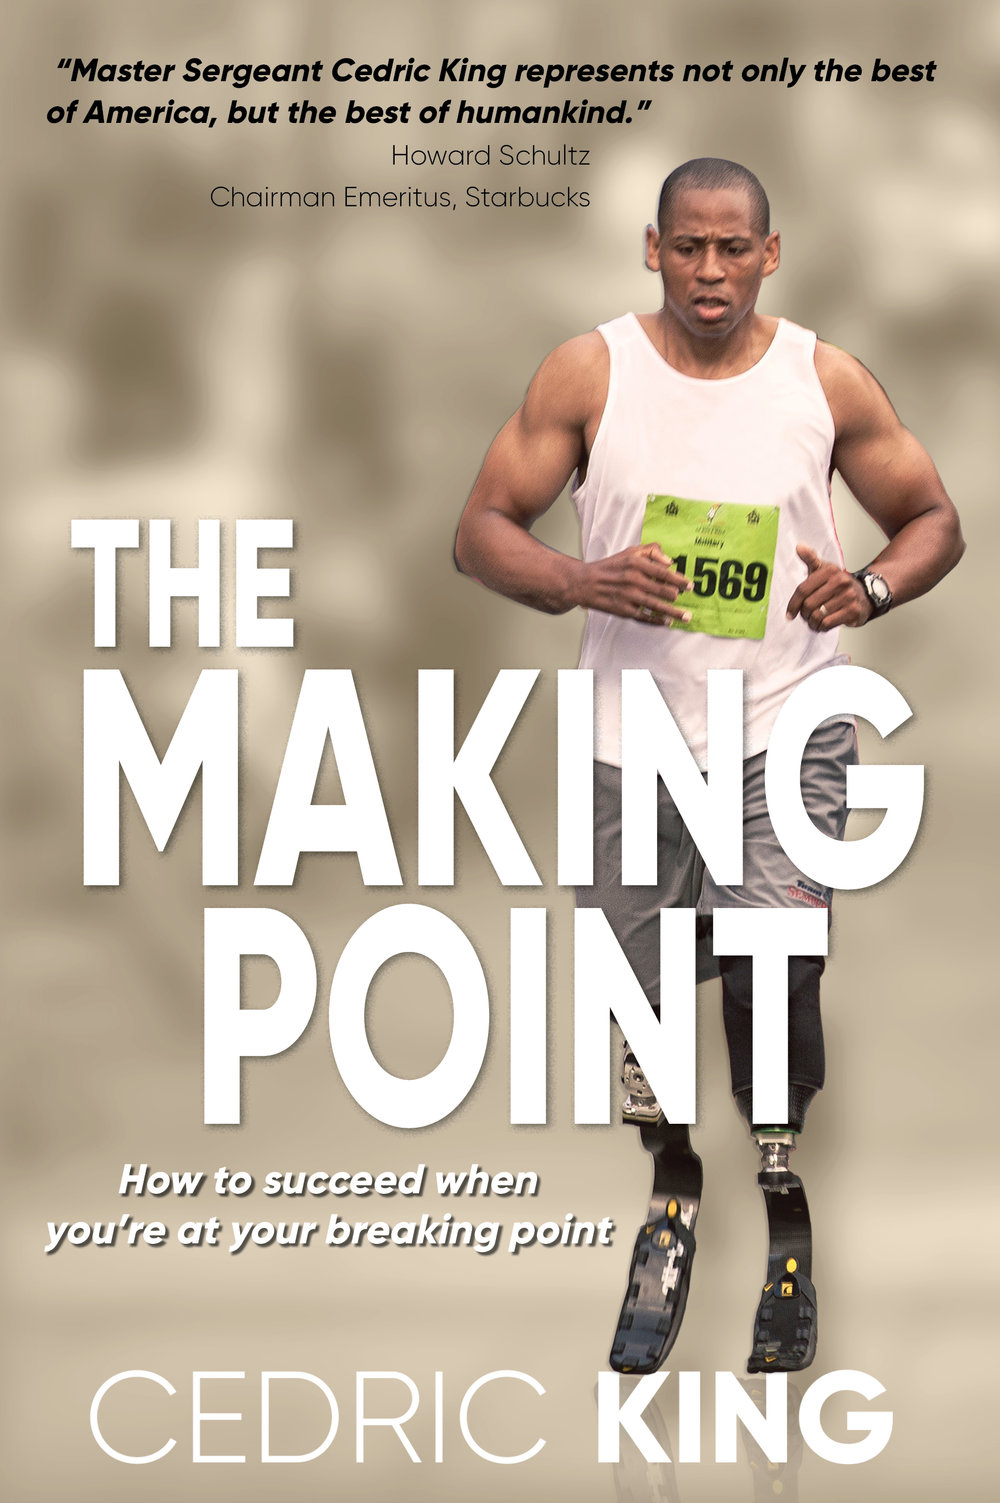 The Making Point Cover MSG Cedric King.jpg